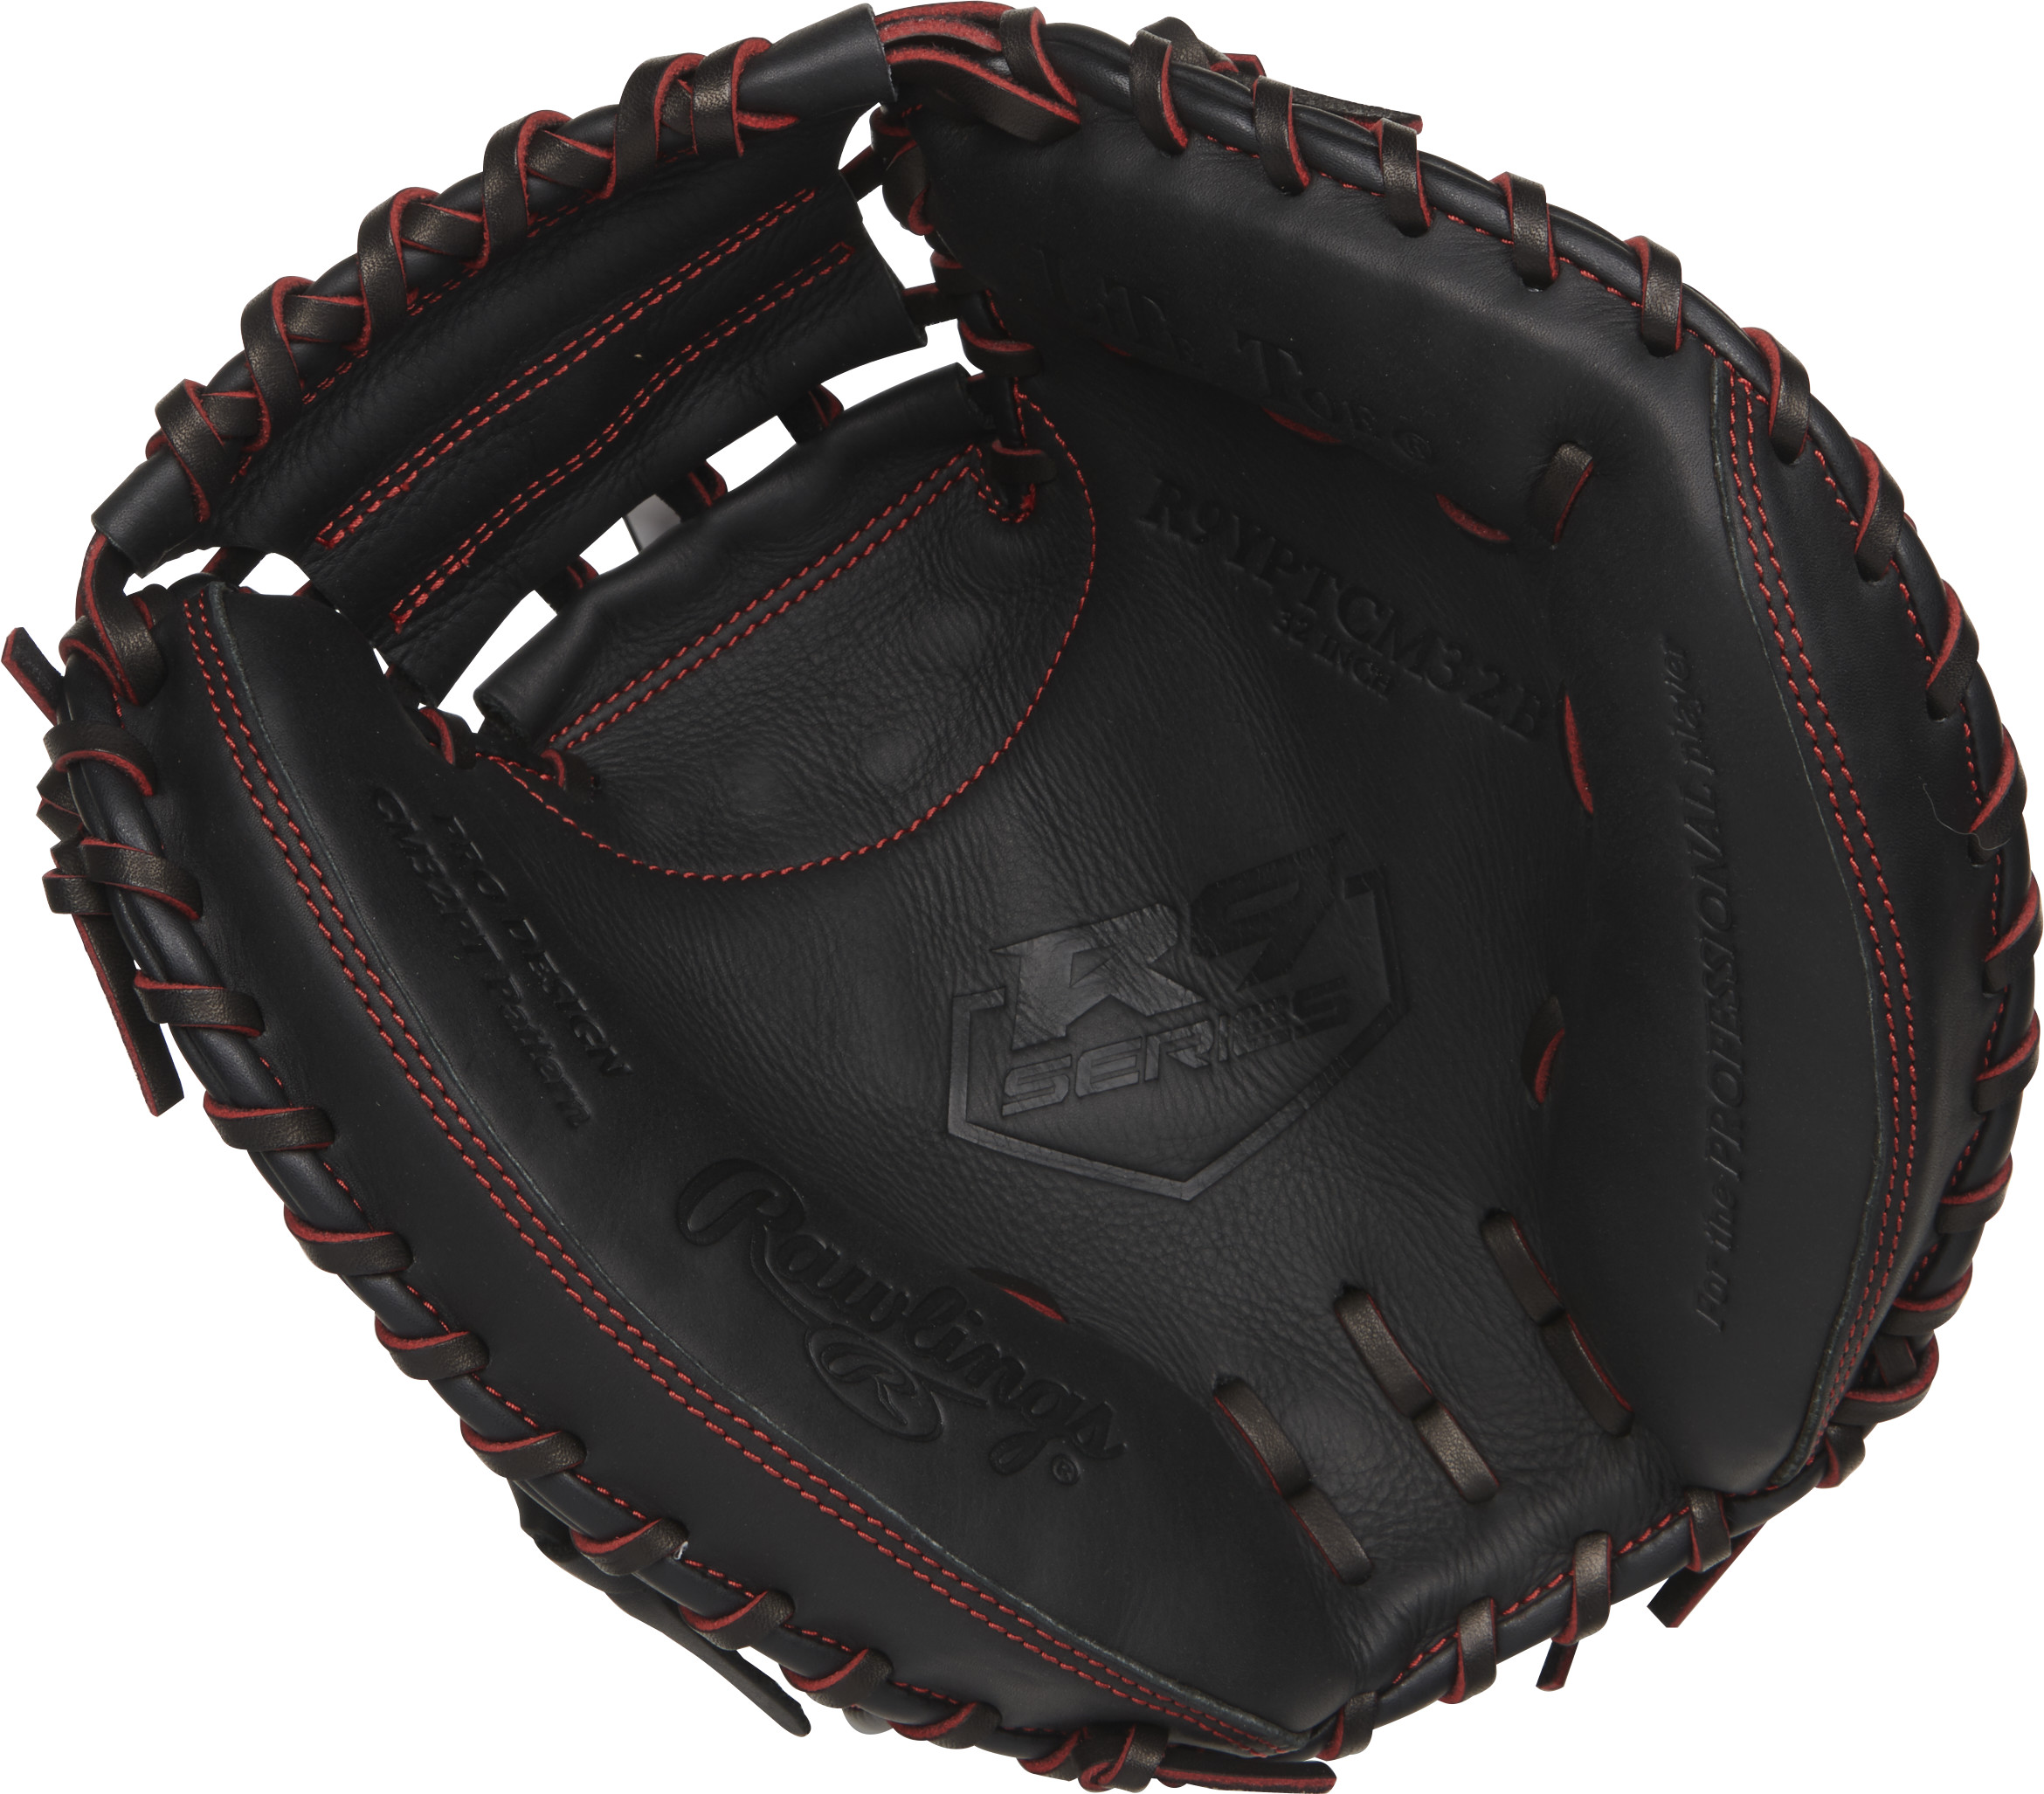 http://www.bestbatdeals.com/images/gloves/rawlings/R9YPTCM32B-1.jpg